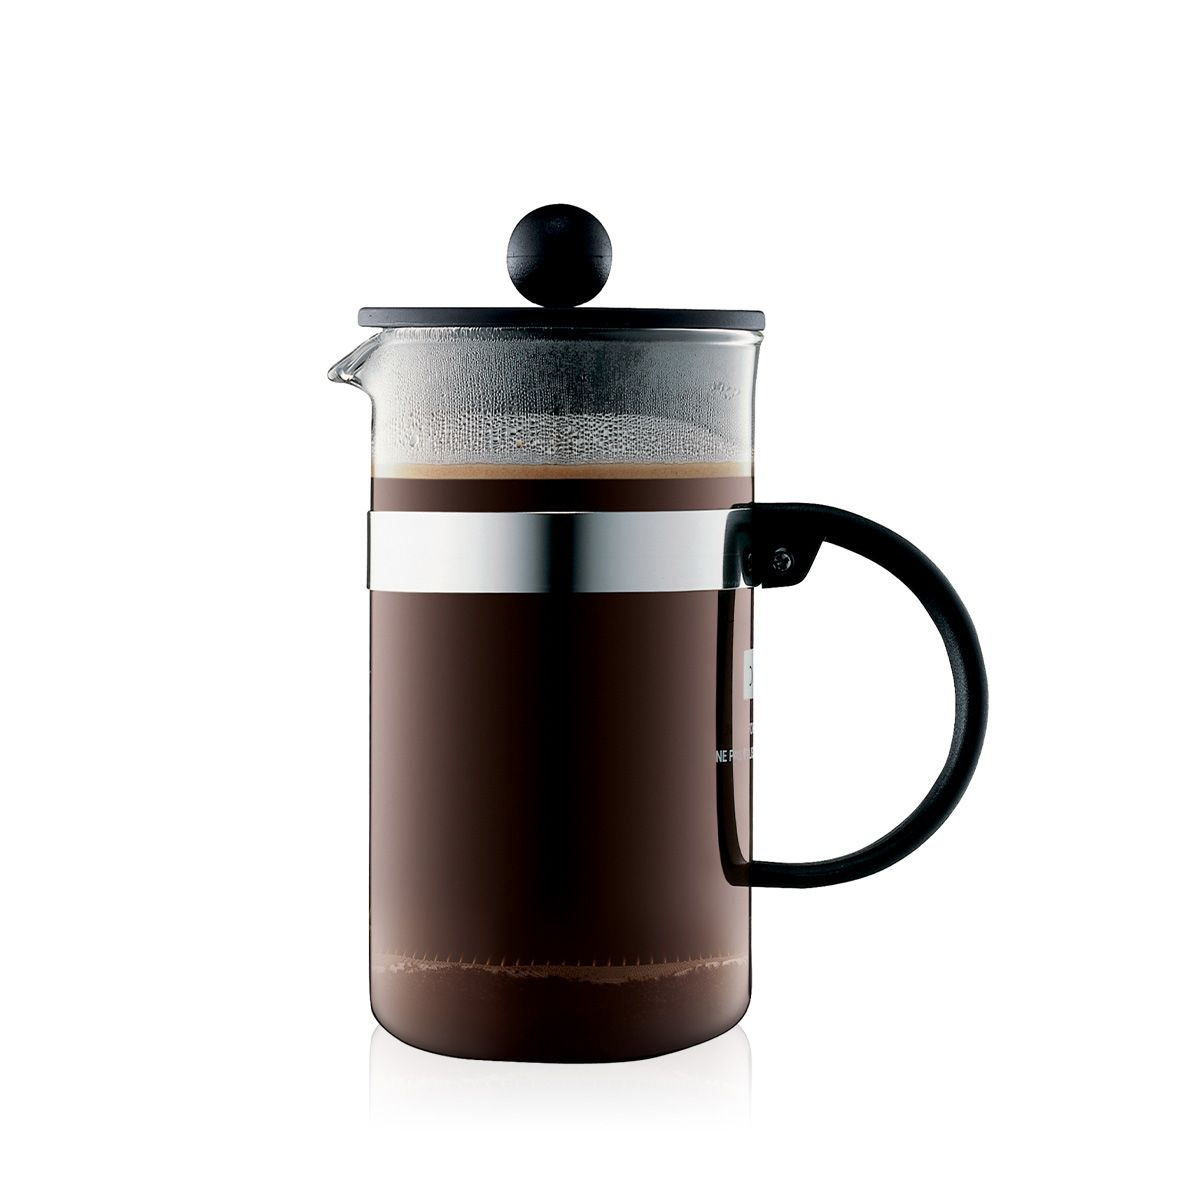 French Press Coffee Maker BISTRO NOUVEAU Bodum